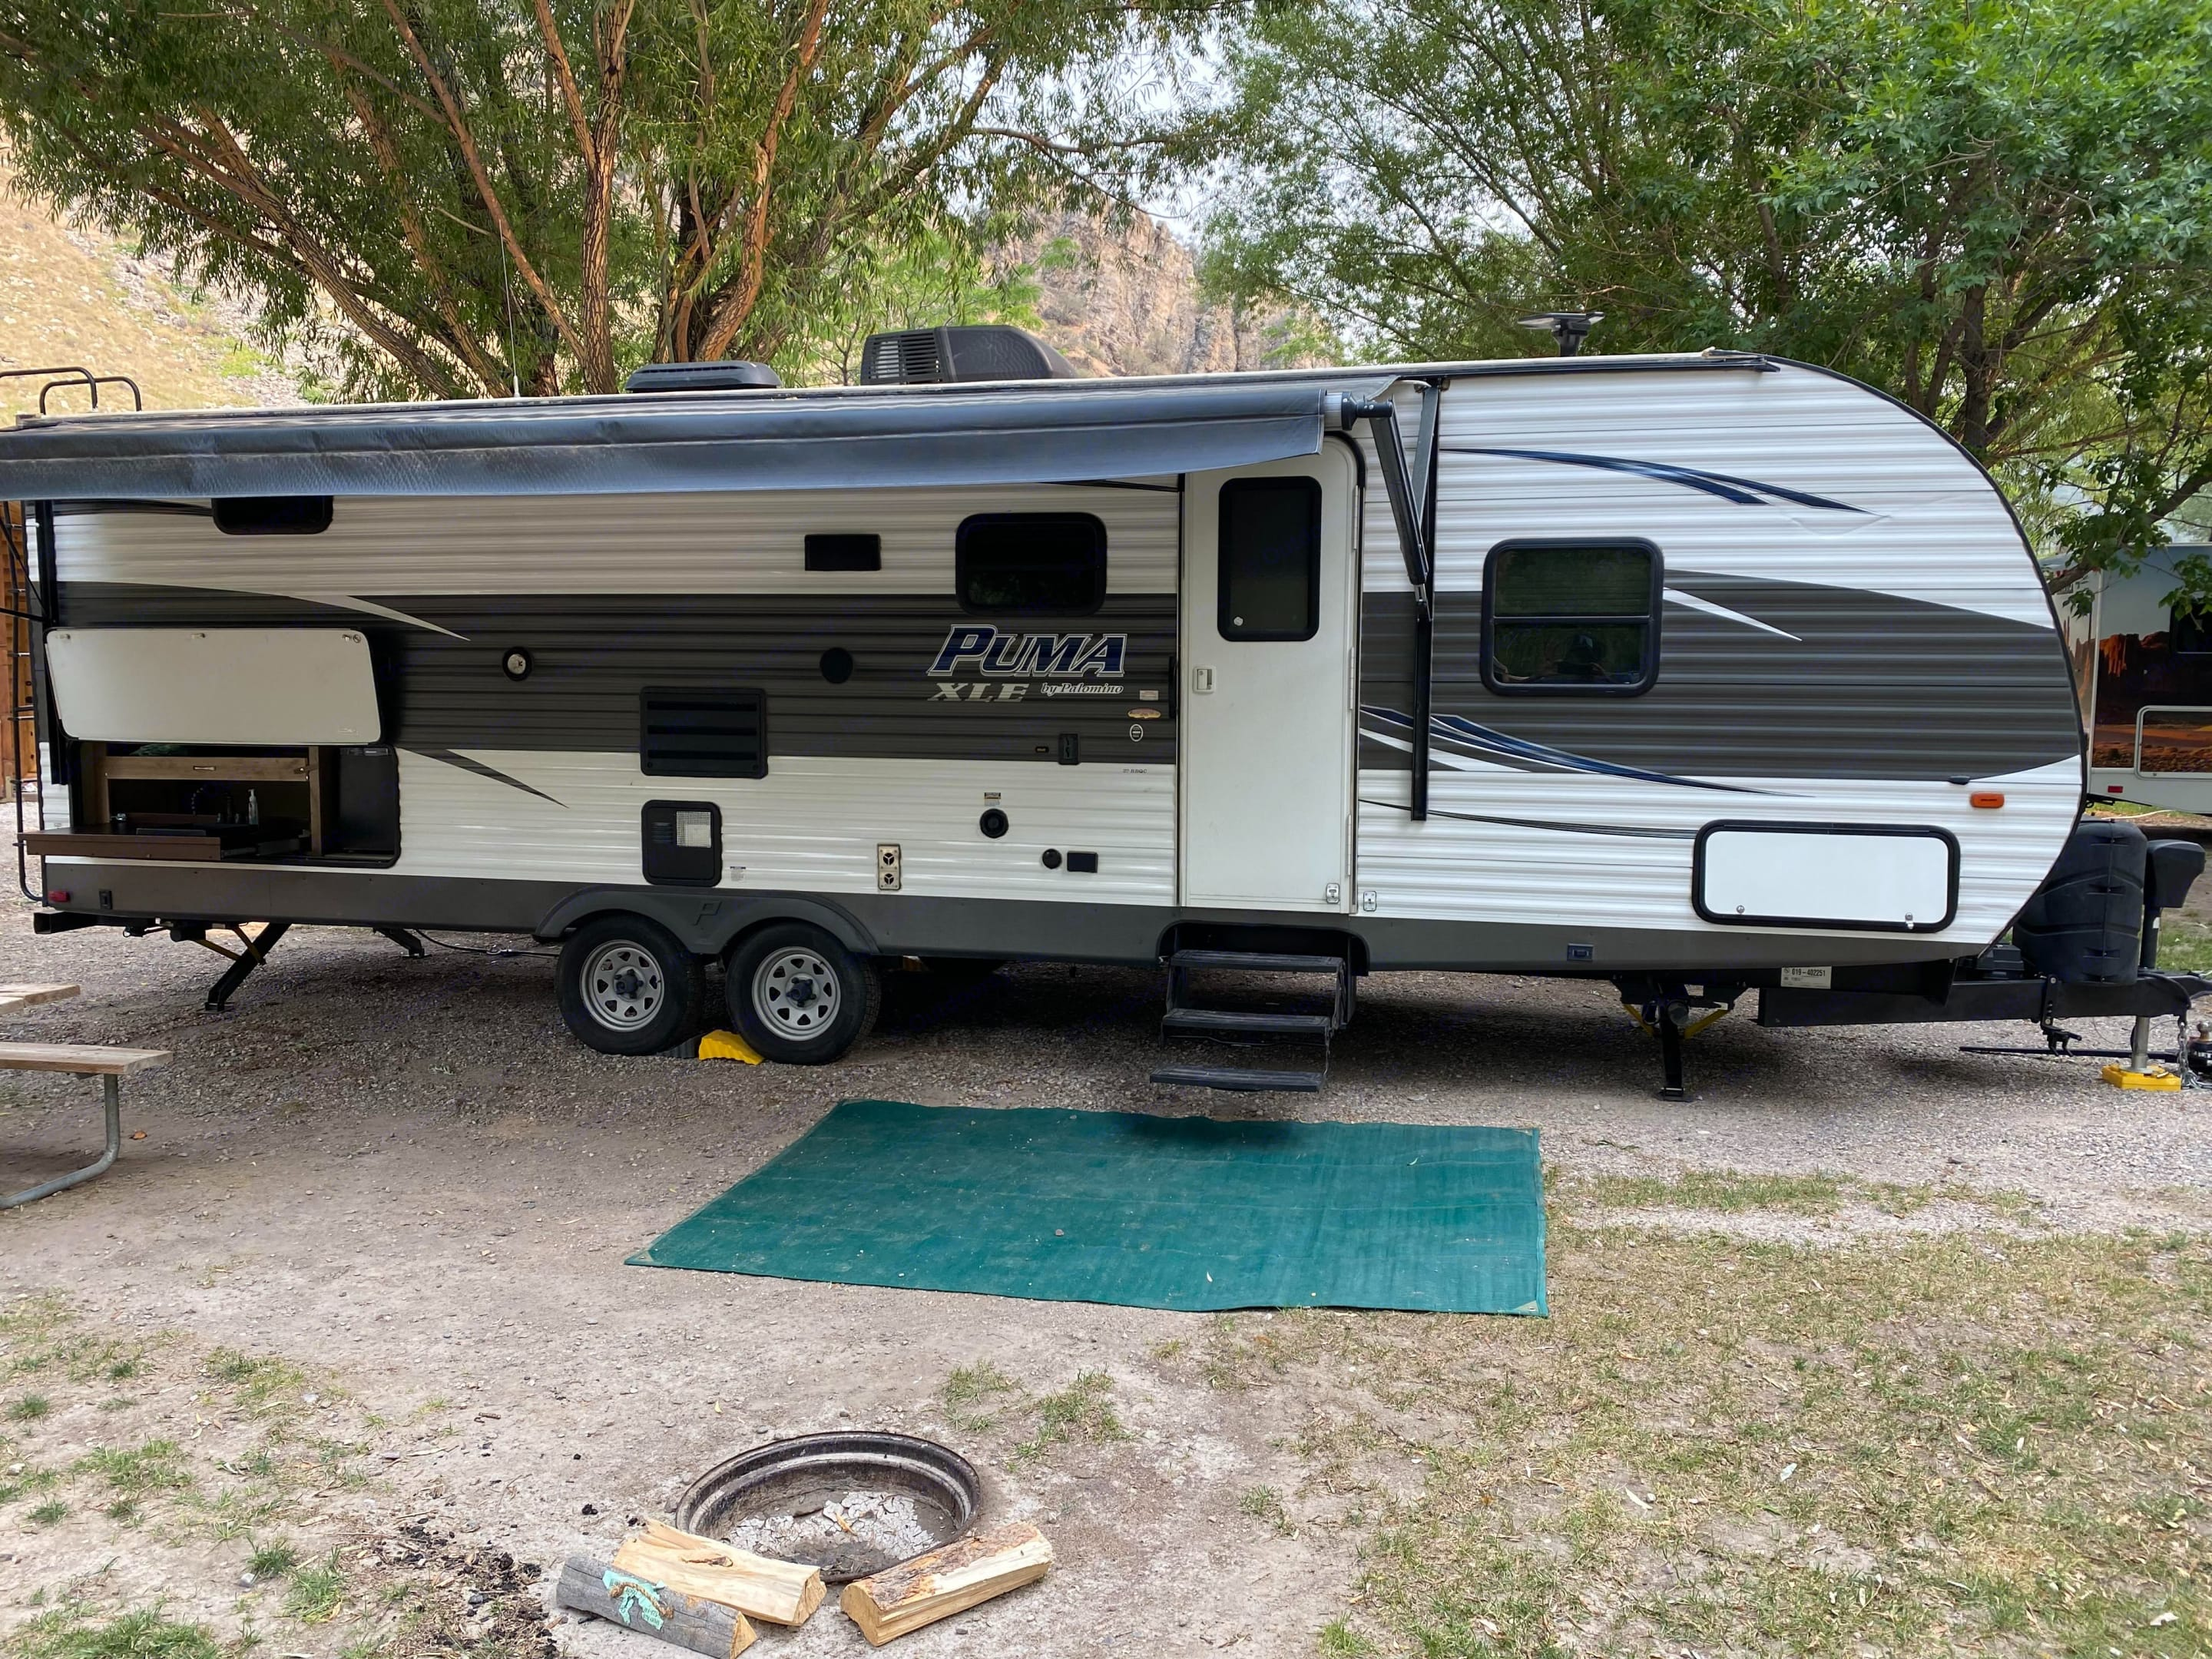 Here is the awning, outside kitchen. Palomino Puma 2017